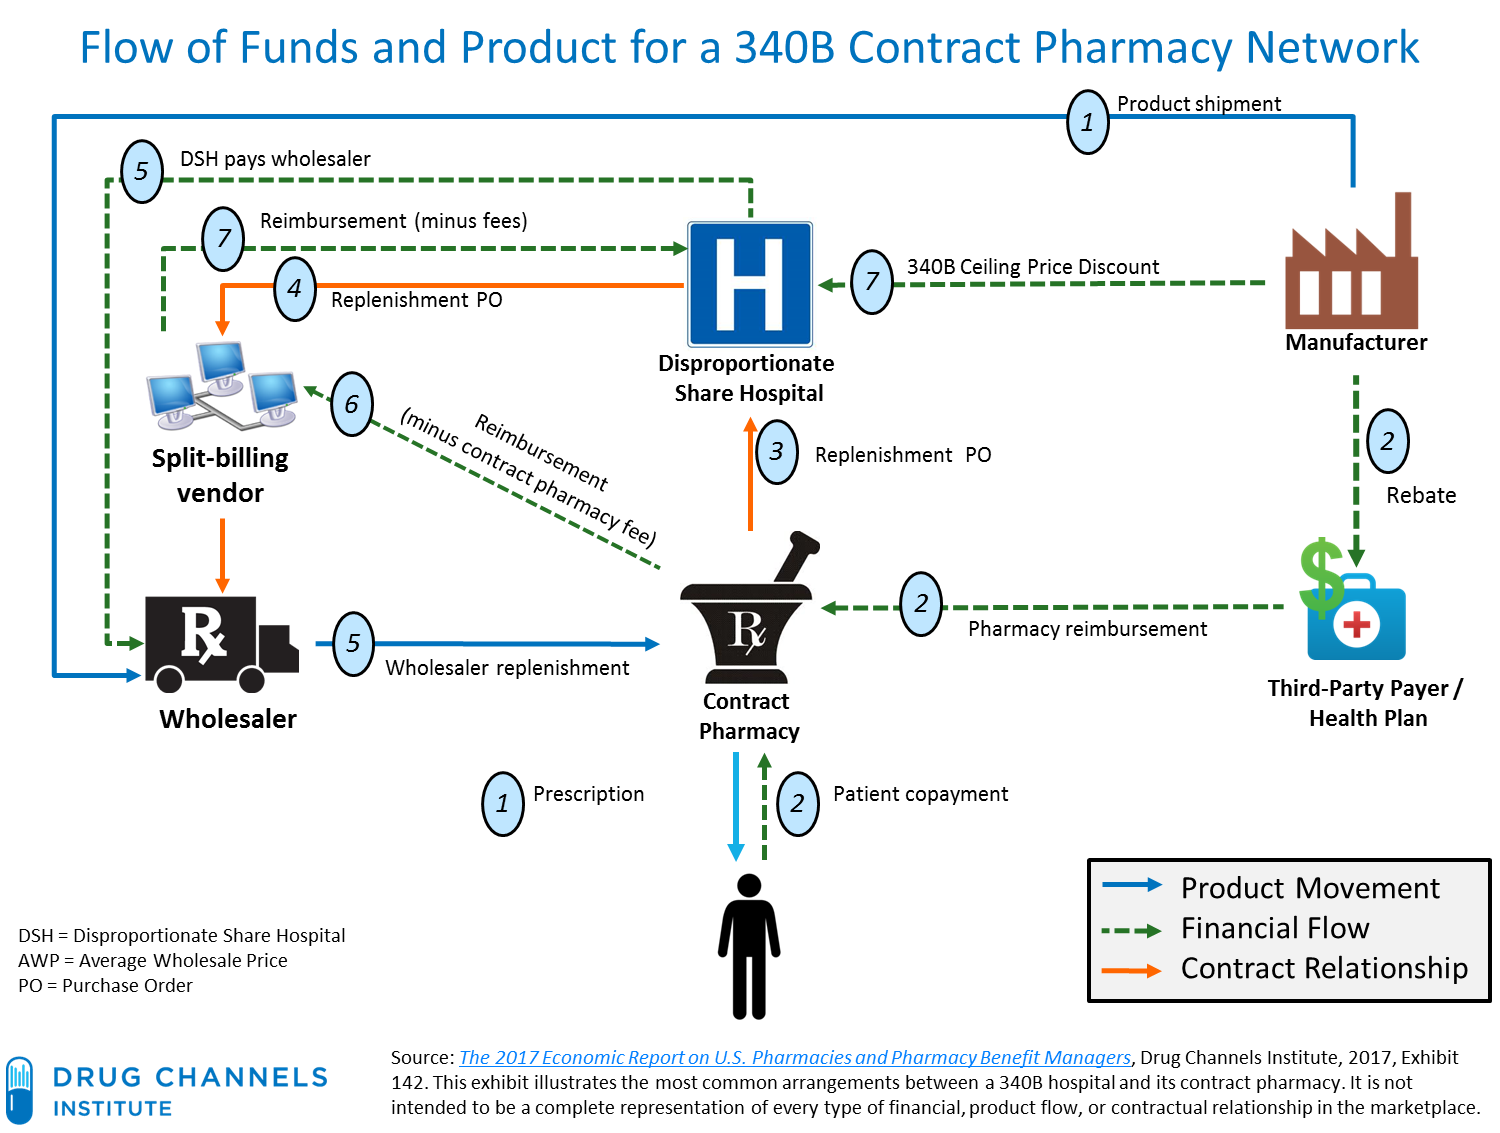 Drug channels 10 hospitals with 340b contract pharmacy mega networks as a 2014 air340b report sensibly recommended contract pharmacies should be located where vulnerable patients qualifying for assistance live geenschuldenfo Images